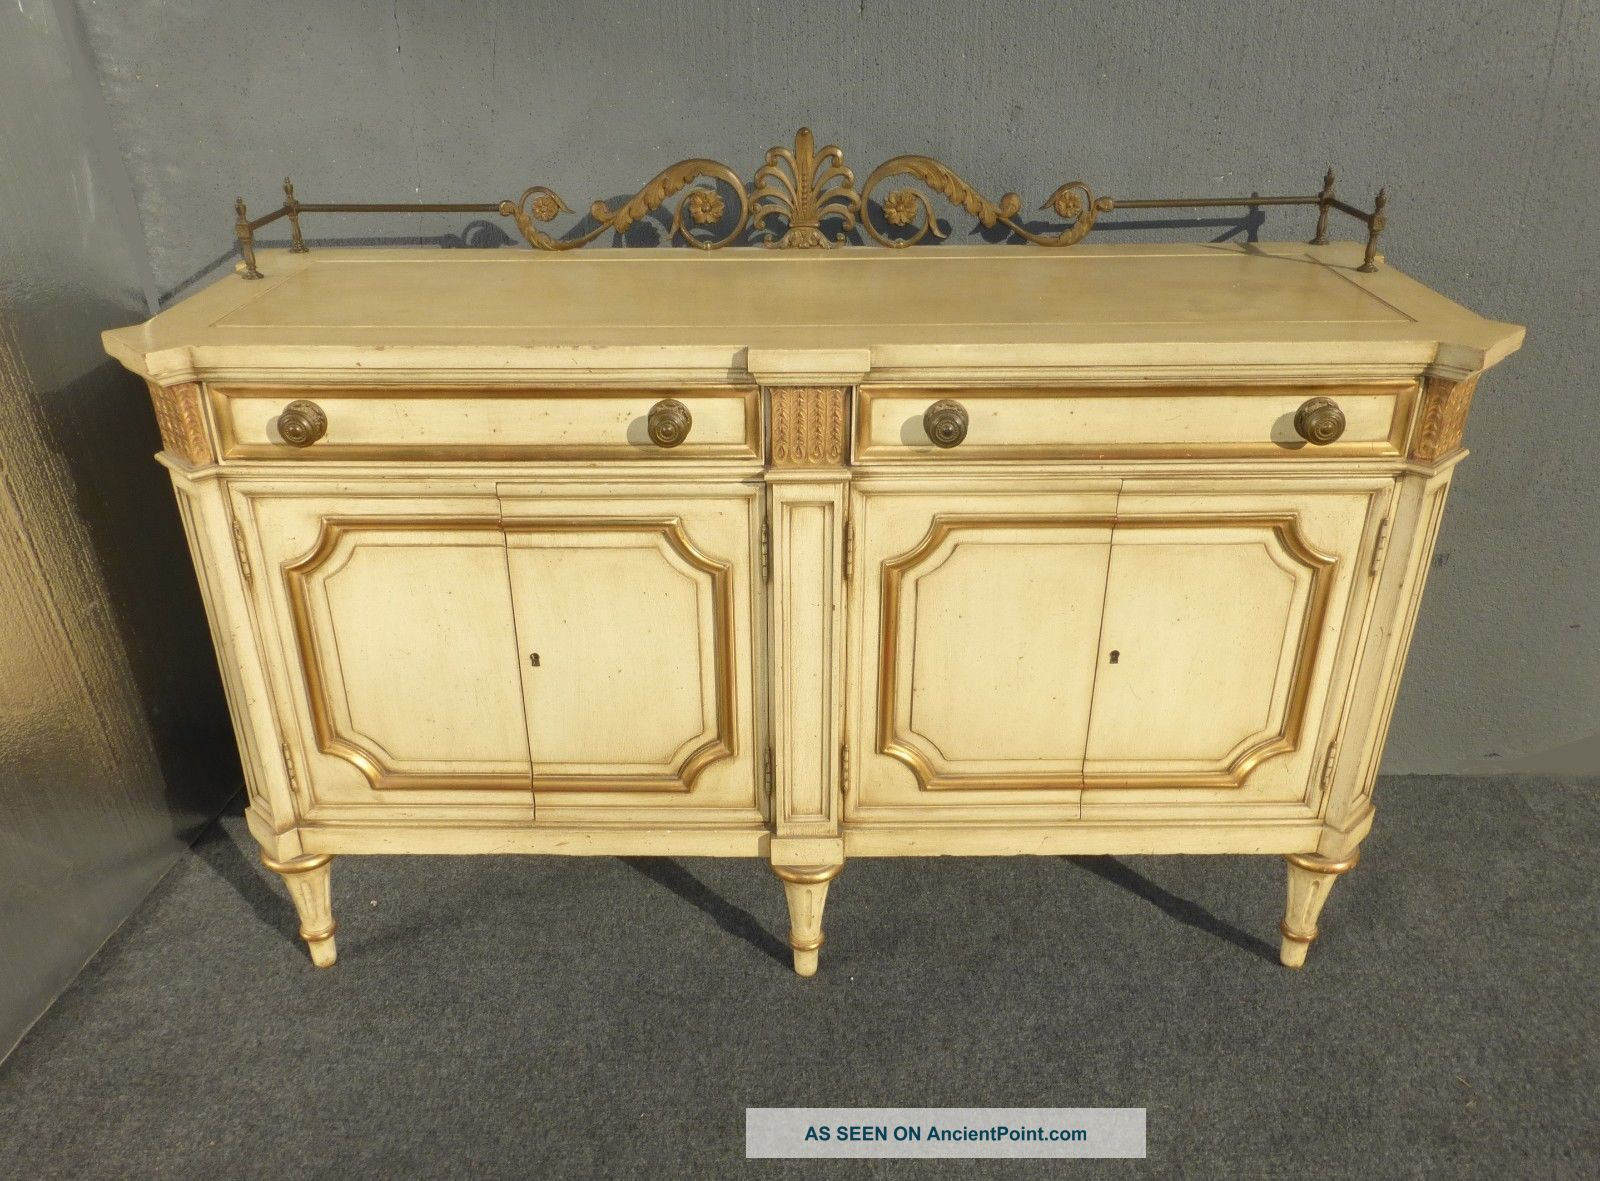 Vintage Luxury Karges Buffet French Country Cottage Gold Gilt Wood Sideboard Post-1950 photo